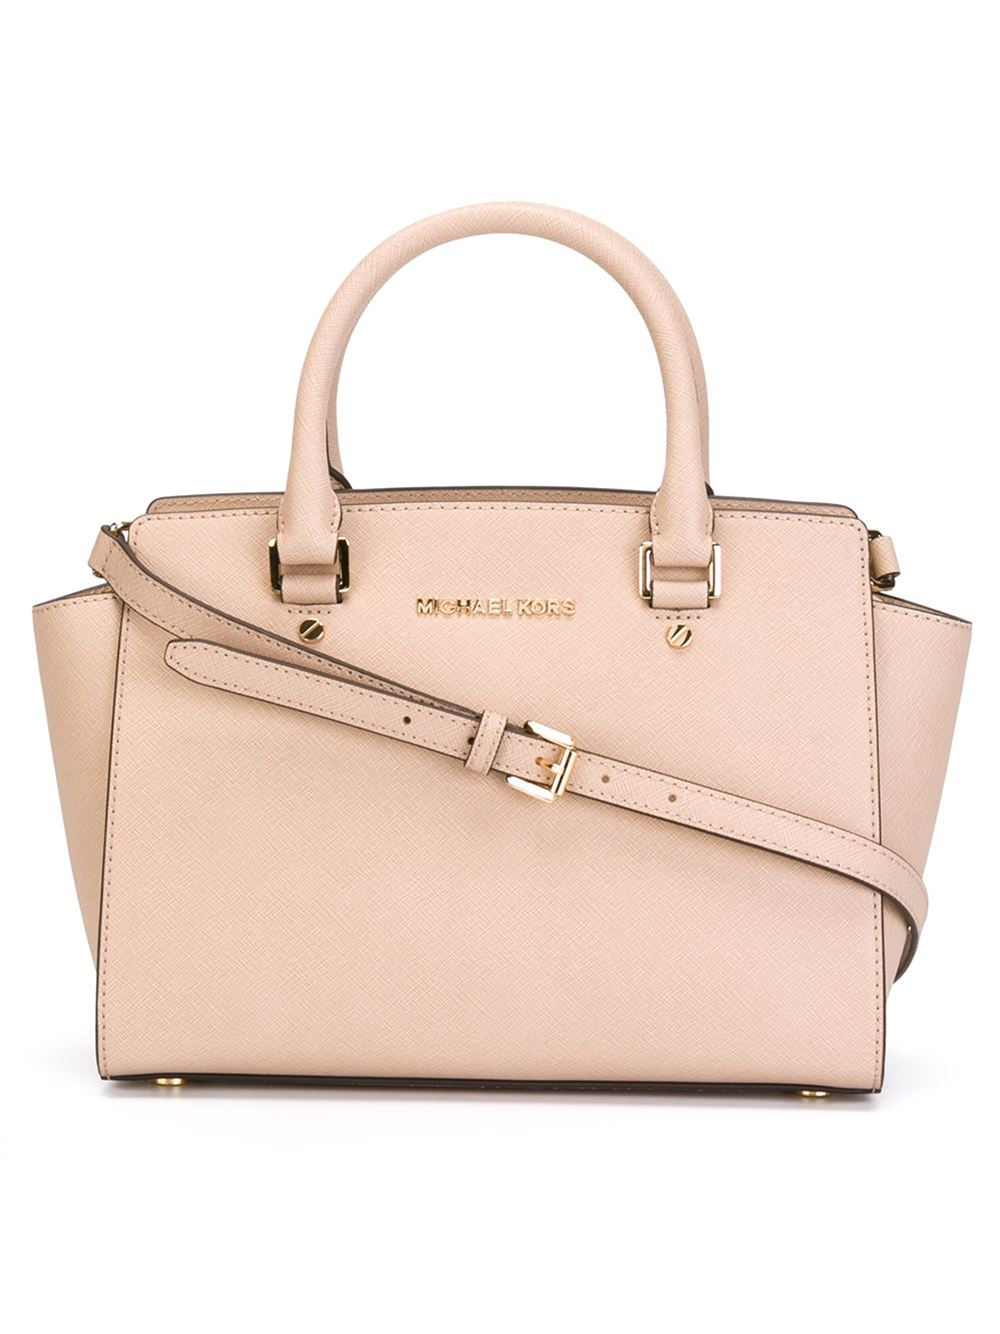 9363b4f8c55a Gallery. Previously sold at: Farfetch · Women's Michael By Michael Kors  Selma